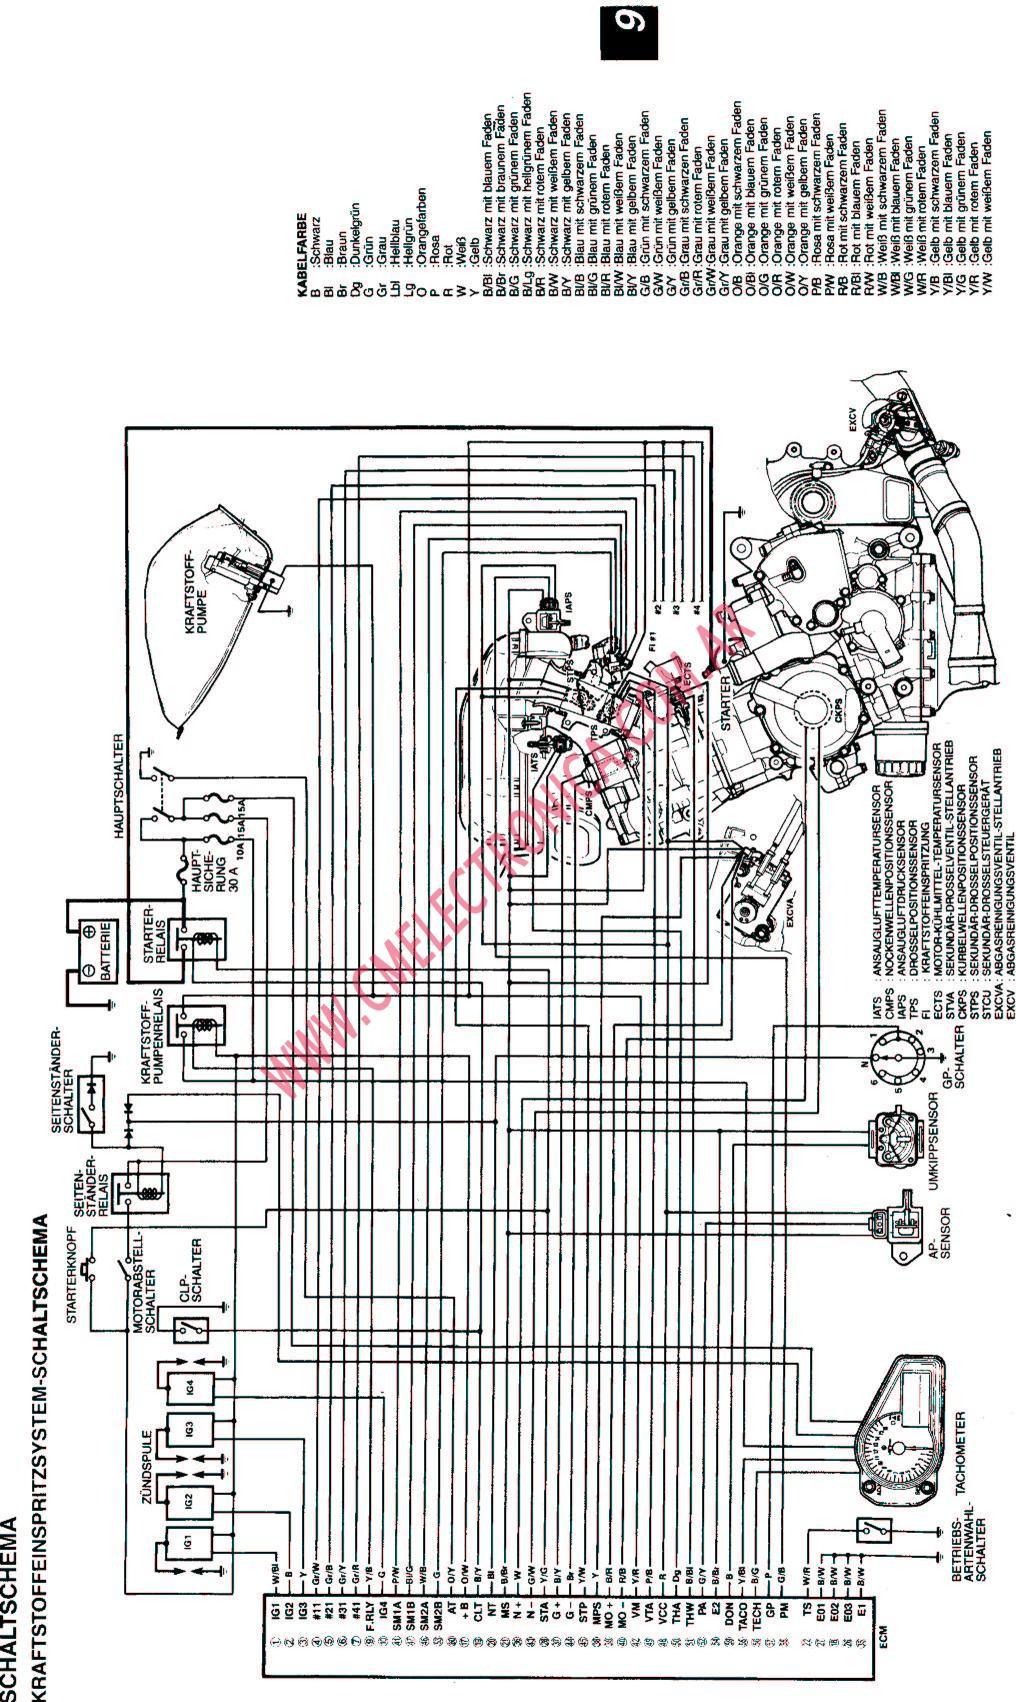 Suzuki Gsx R Hayabusa furthermore Gsxr Wiringdiagram additionally Wire moreover K Gix Eu besides Lighted Toggle Switch Wiring Diagram Cgokfii. on suzuki katana 600 wiring diagram